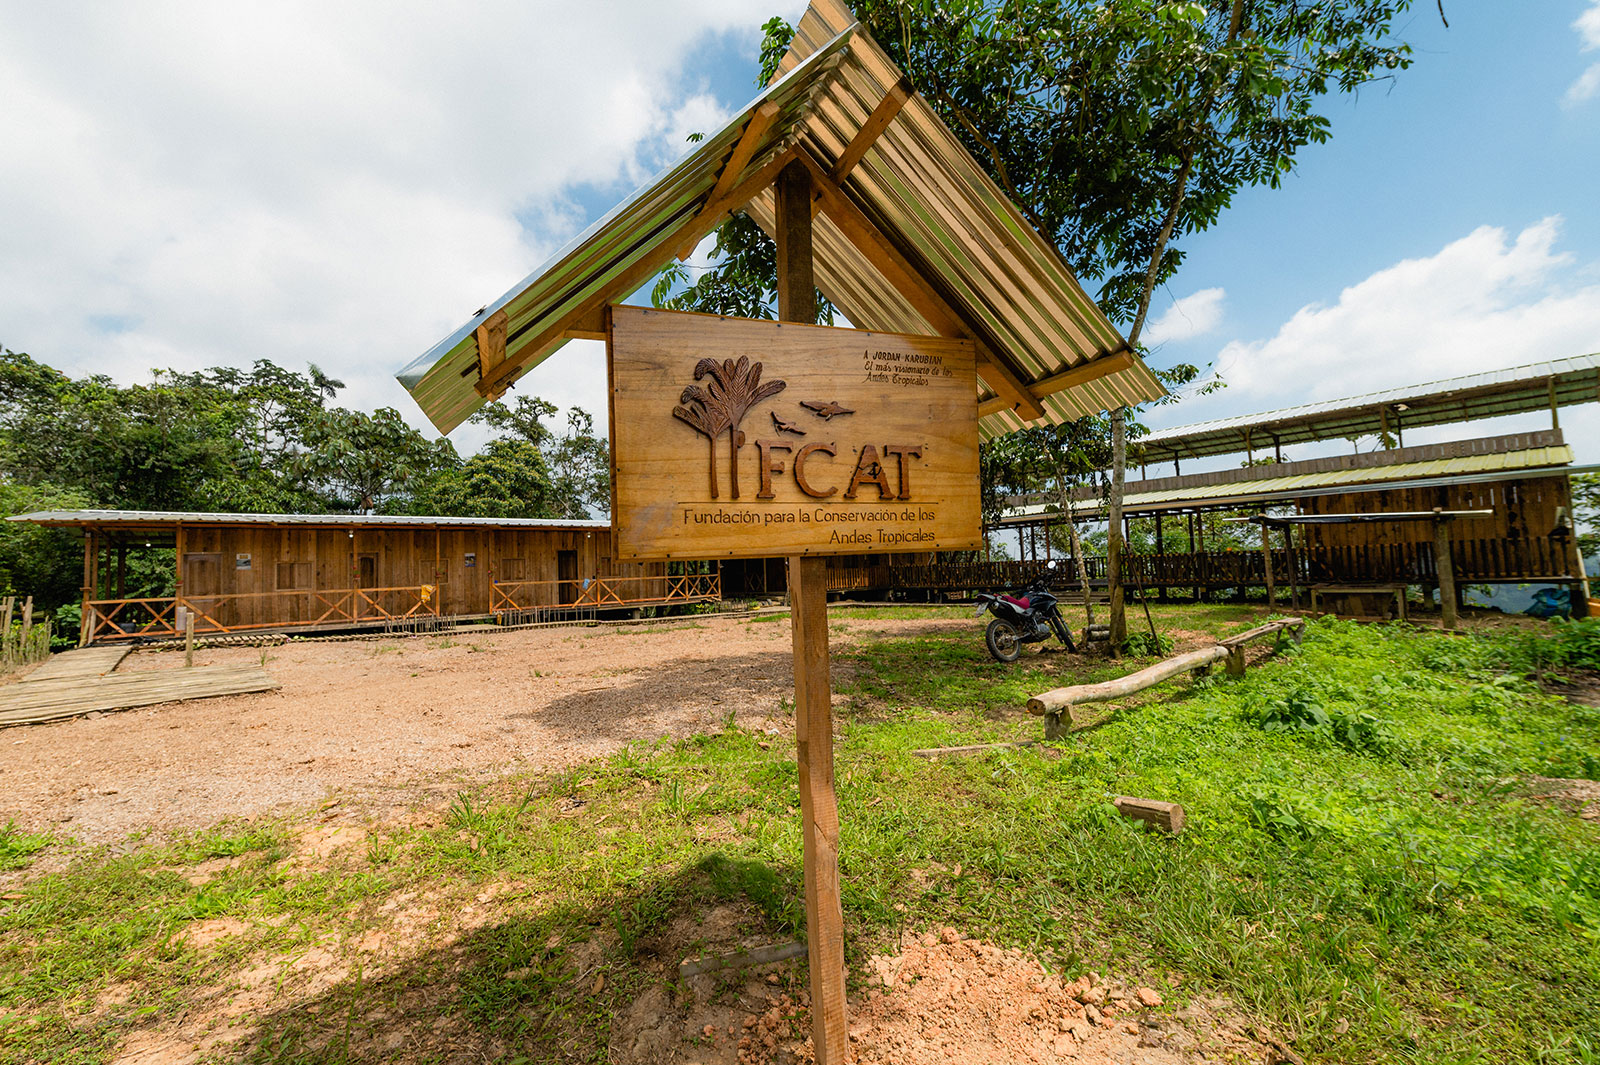 A carved wooden sign stands at the entrance to the FCAT station